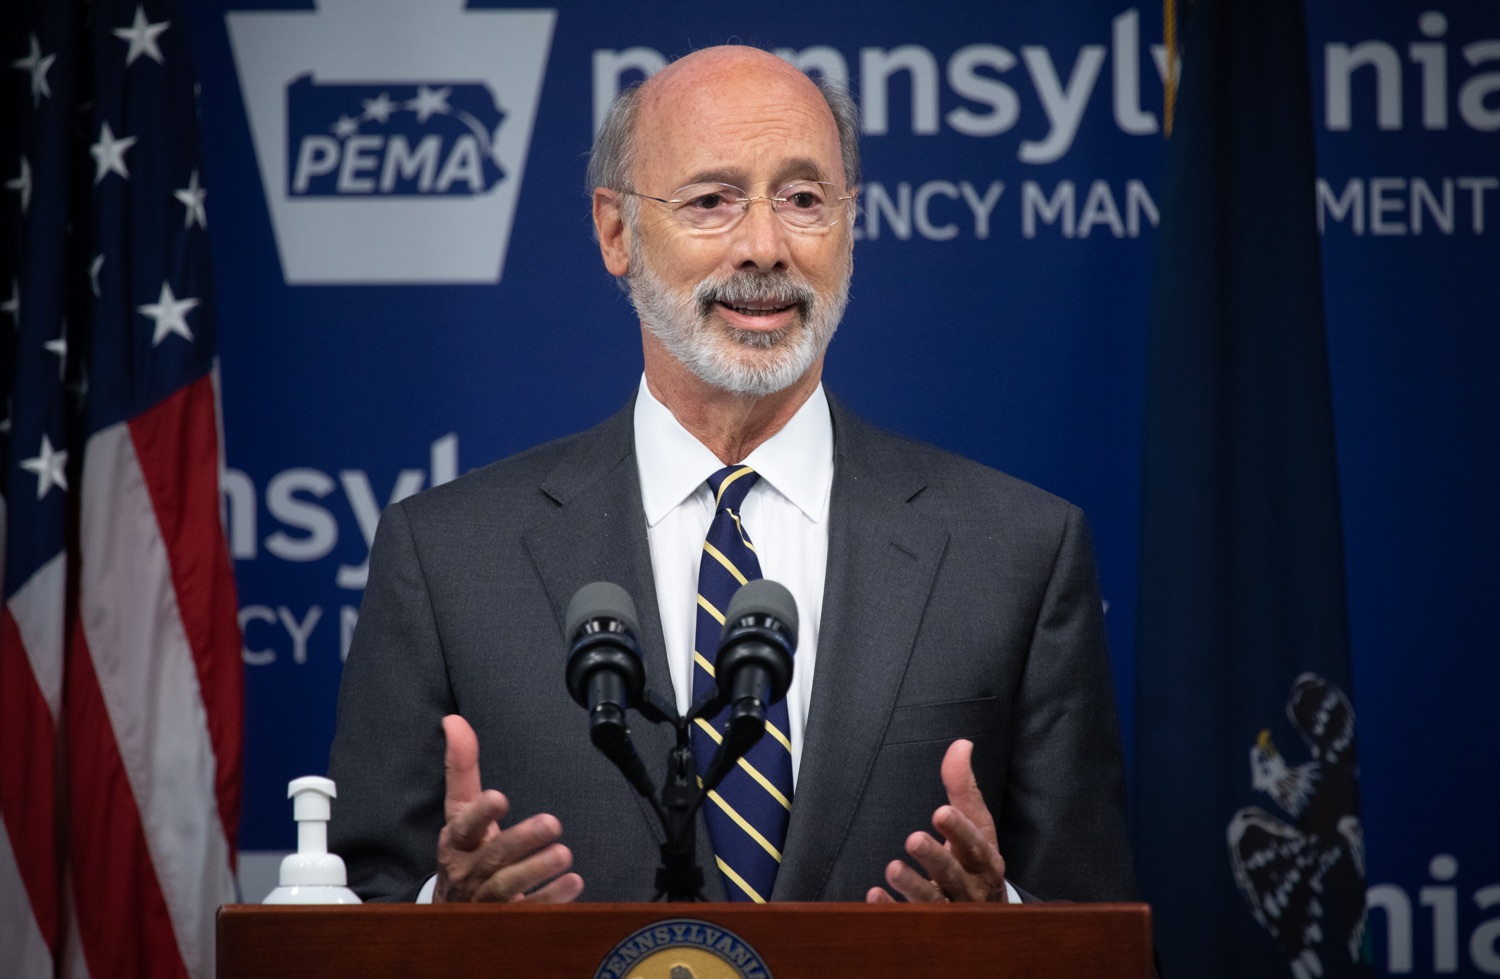 """<a href=""""https://filesource.wostreaming.net/commonwealthofpa/photo/18165_GOV_covid_mitigation_dz_08.jpg"""" target=""""_blank"""">⇣Download Photo<br></a>Pennsylvania Governor Tom Wolf speaking with the press. Governor Tom Wolf and Sec. of Health Dr. Rachel Levine today signed new orders for targeted mitigation efforts in response to the recent rise in COVID cases, primarily in southwest Pennsylvania, but also in other counties in the state, influencing the decision for statewide mitigation efforts for bars and restaurants, gatherings and telework. The new orders take effect at 12:01 a.m., Thursday, July 16, 2020.  Harrisburg, - July 15, 2020"""